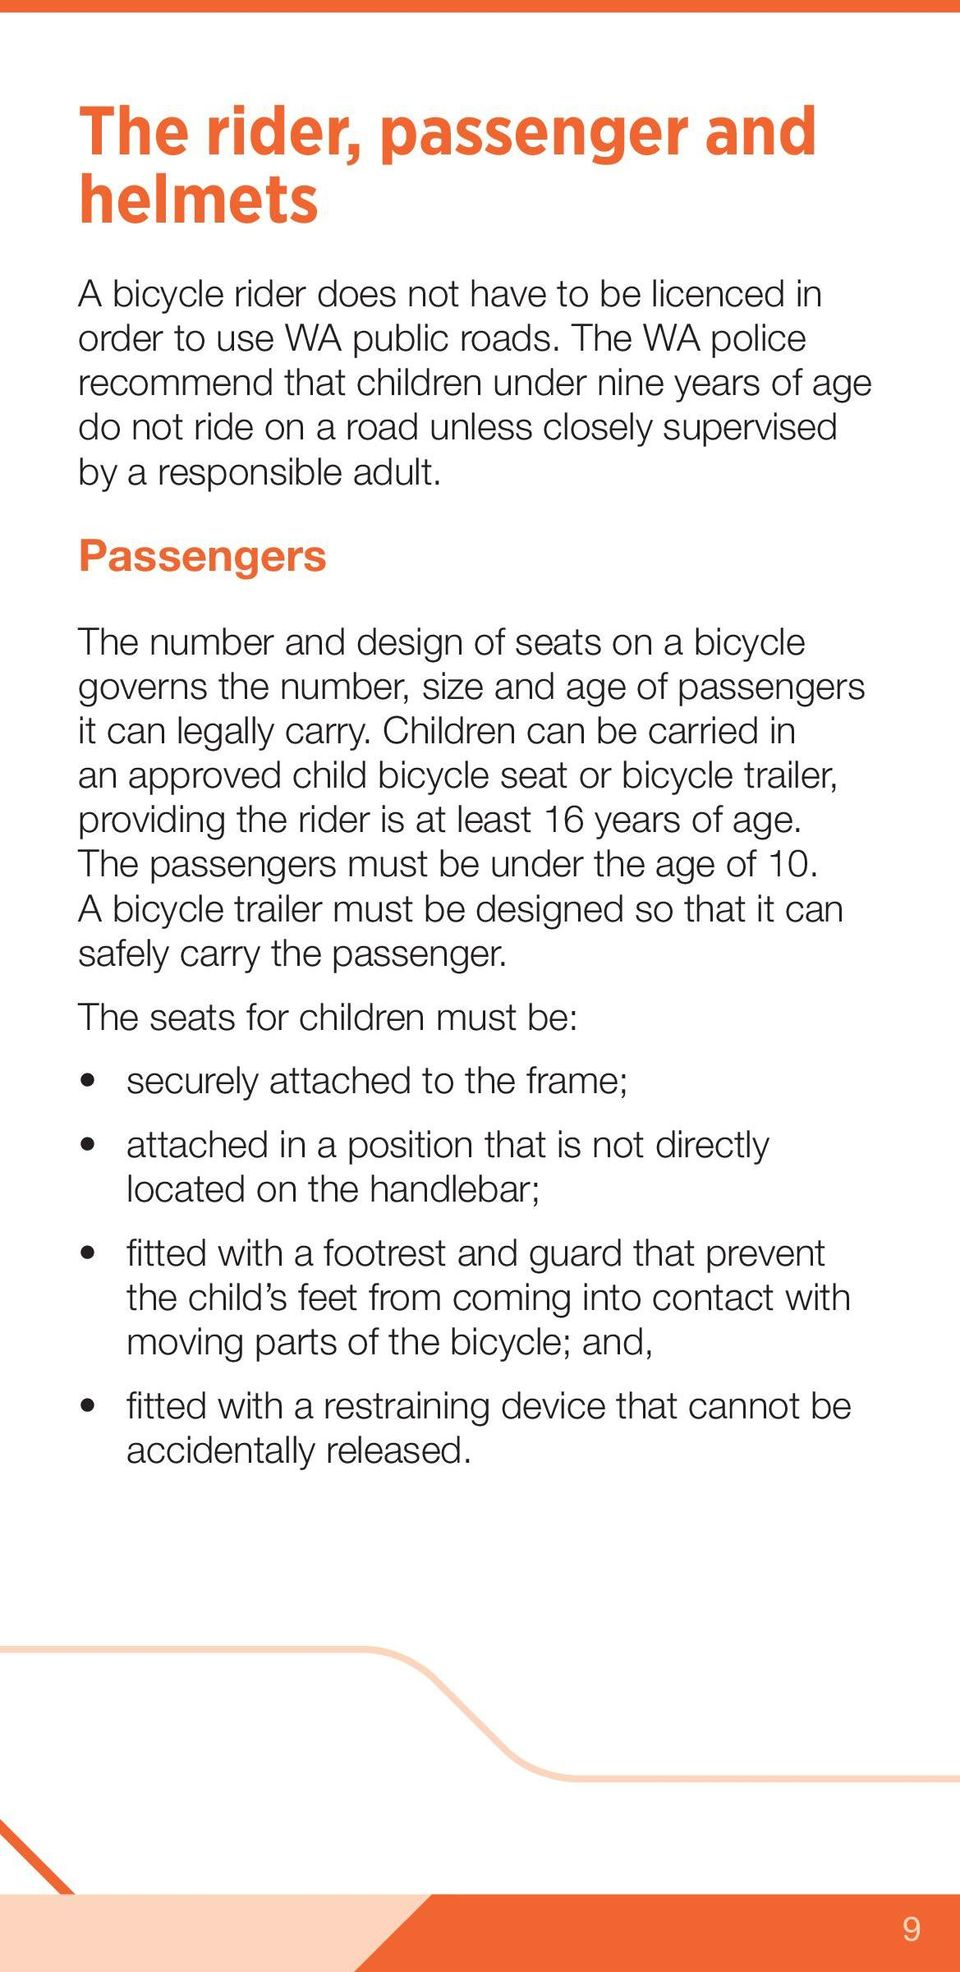 Passengers The number and design of seats on a bicycle governs the number, size and age of passengers it can legally carry.